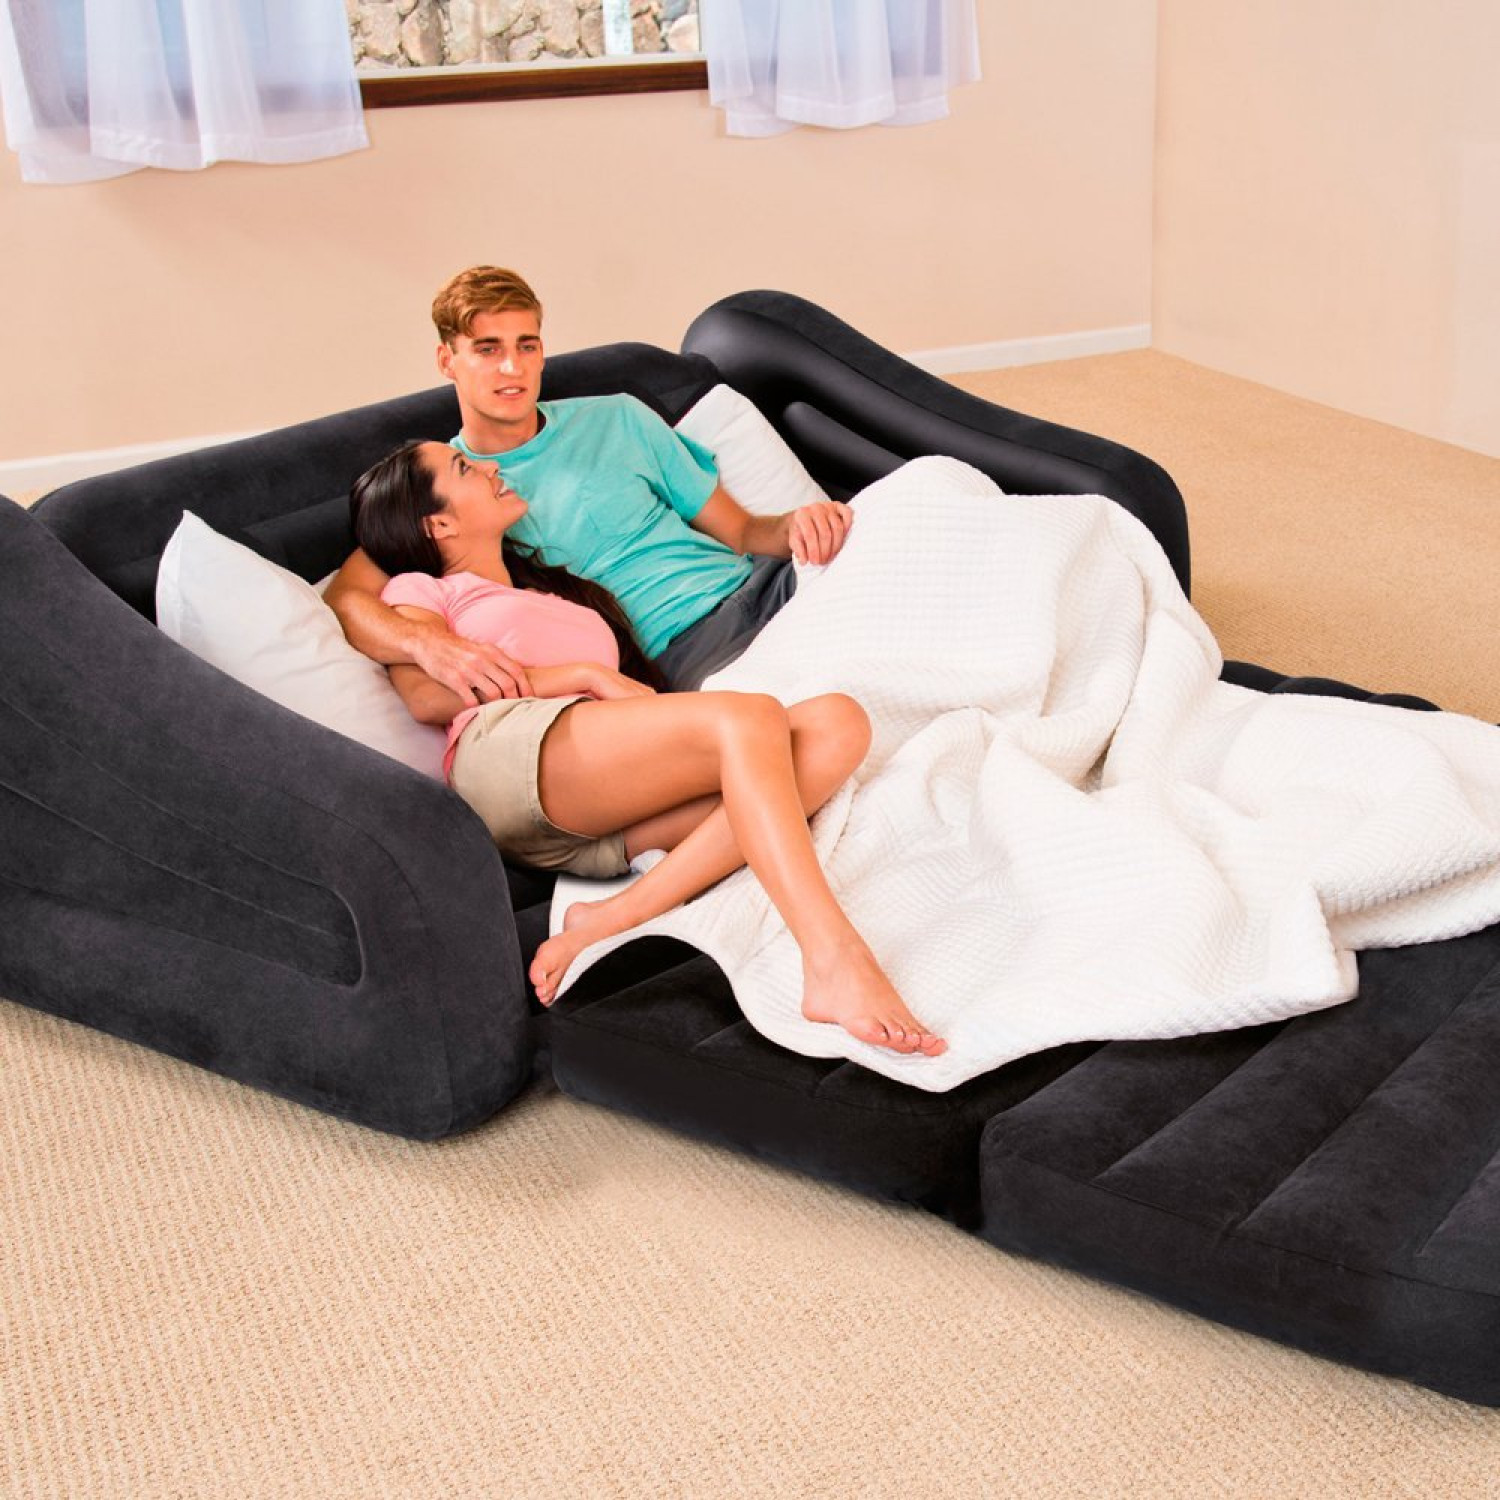 Black Inflatable Double Blow Up Camping kids Air Bed Sofa  : newz355454u265z265 from www.ebay.co.uk size 1500 x 1500 jpeg 430kB